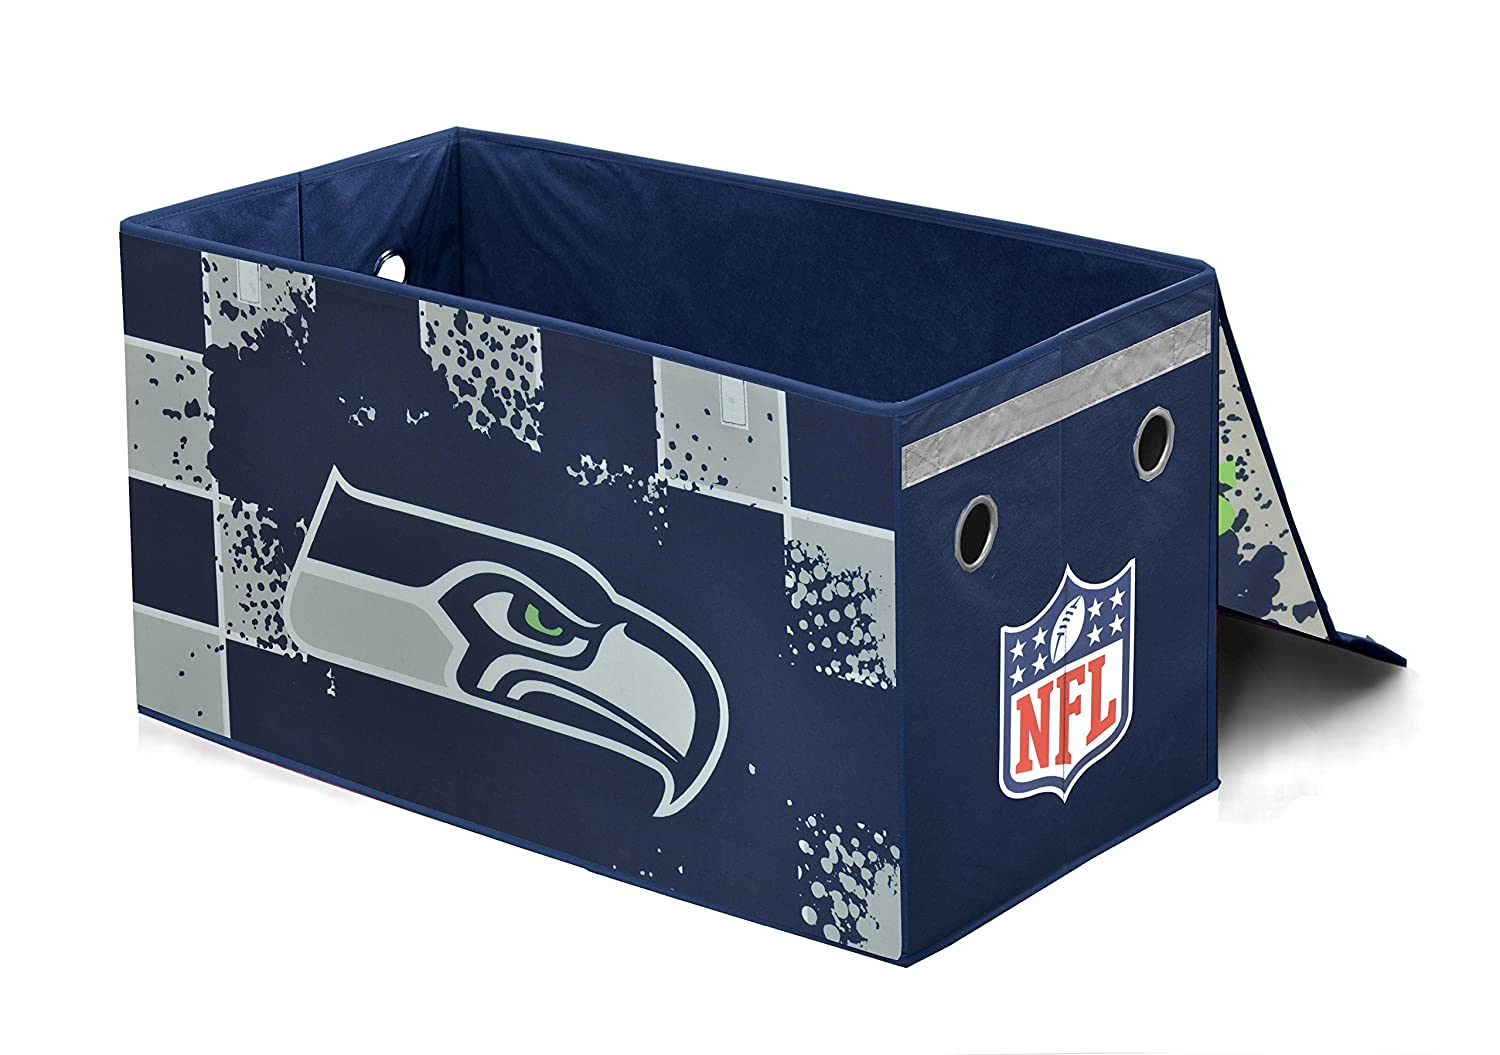 Amazon.com: NFL Seattle Seahawks Collapsible Storage Trunk: Toys U0026 Games